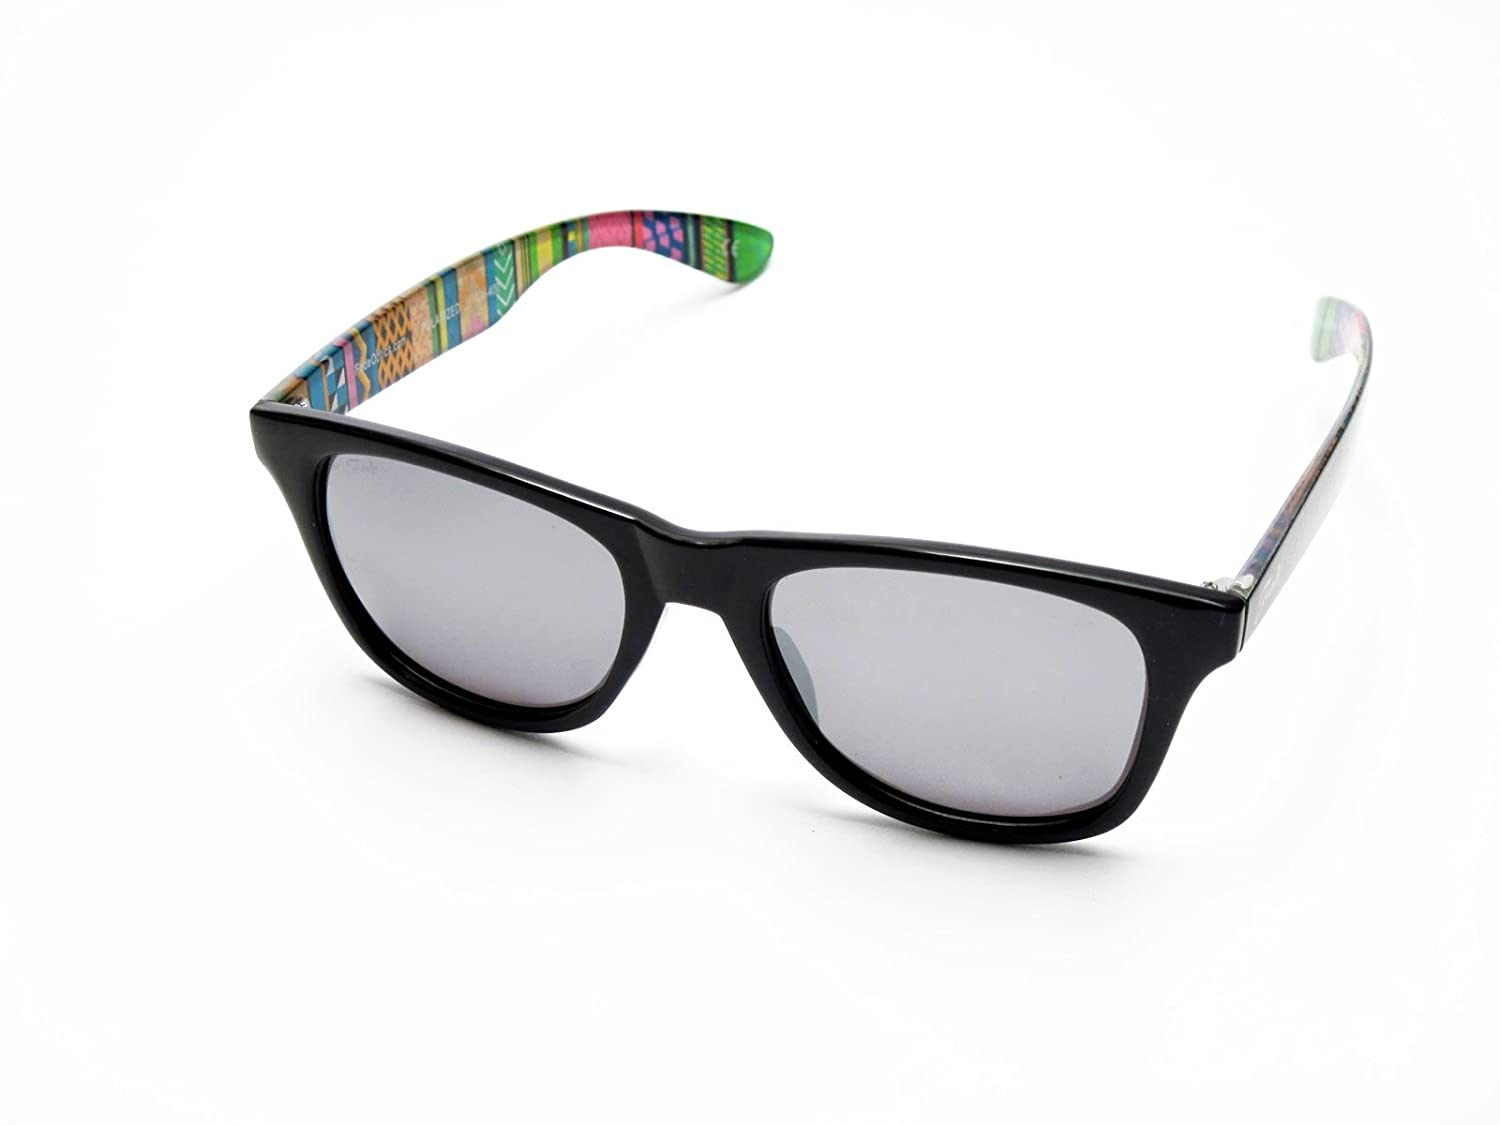 Sunglasses Glossy Black Frames and Aztec Pattern 鈥